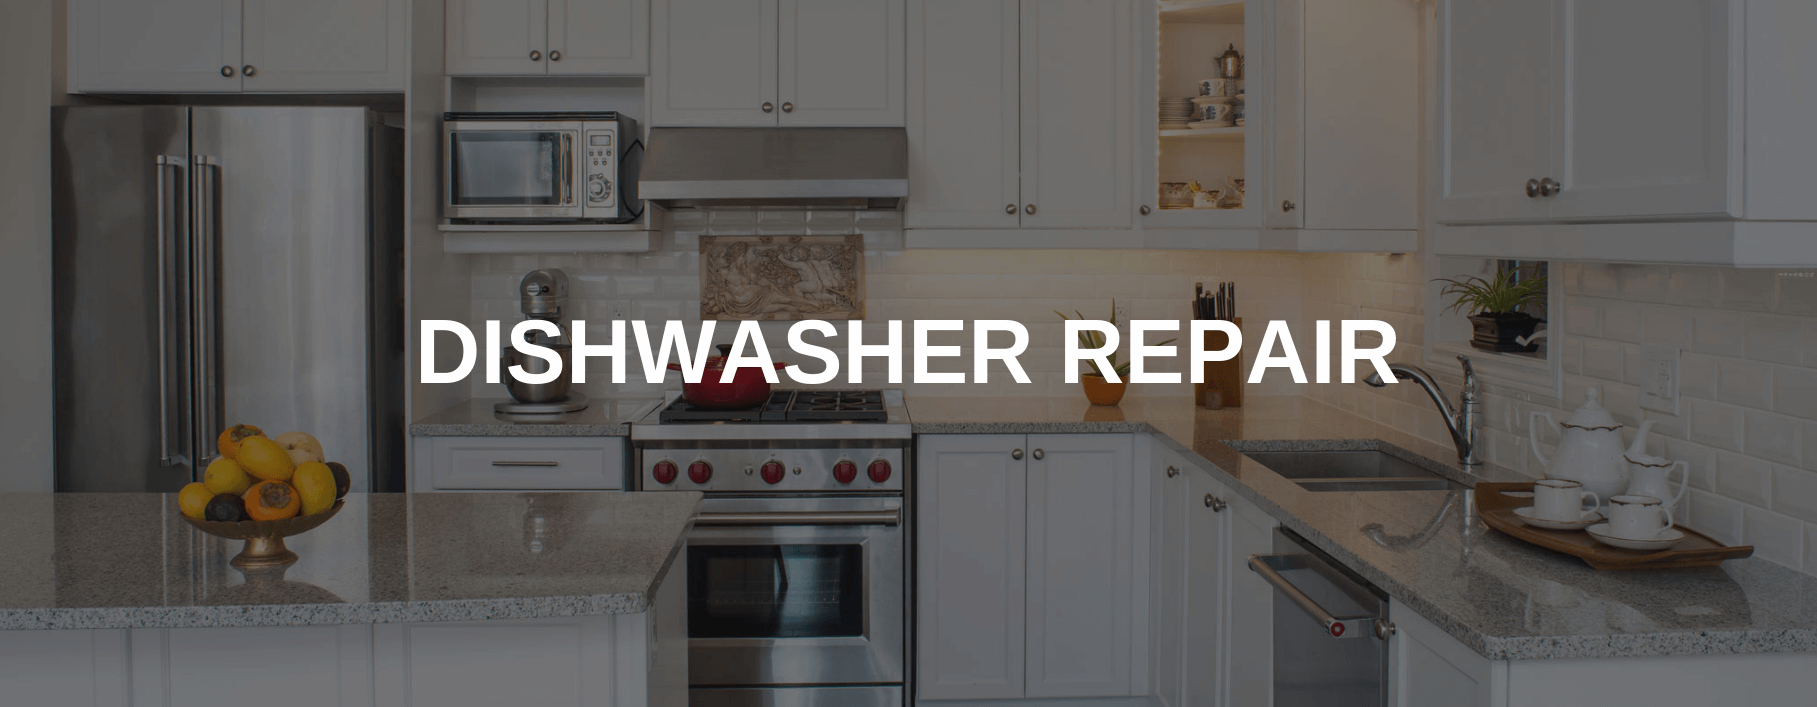 dishwasher repair shoreline